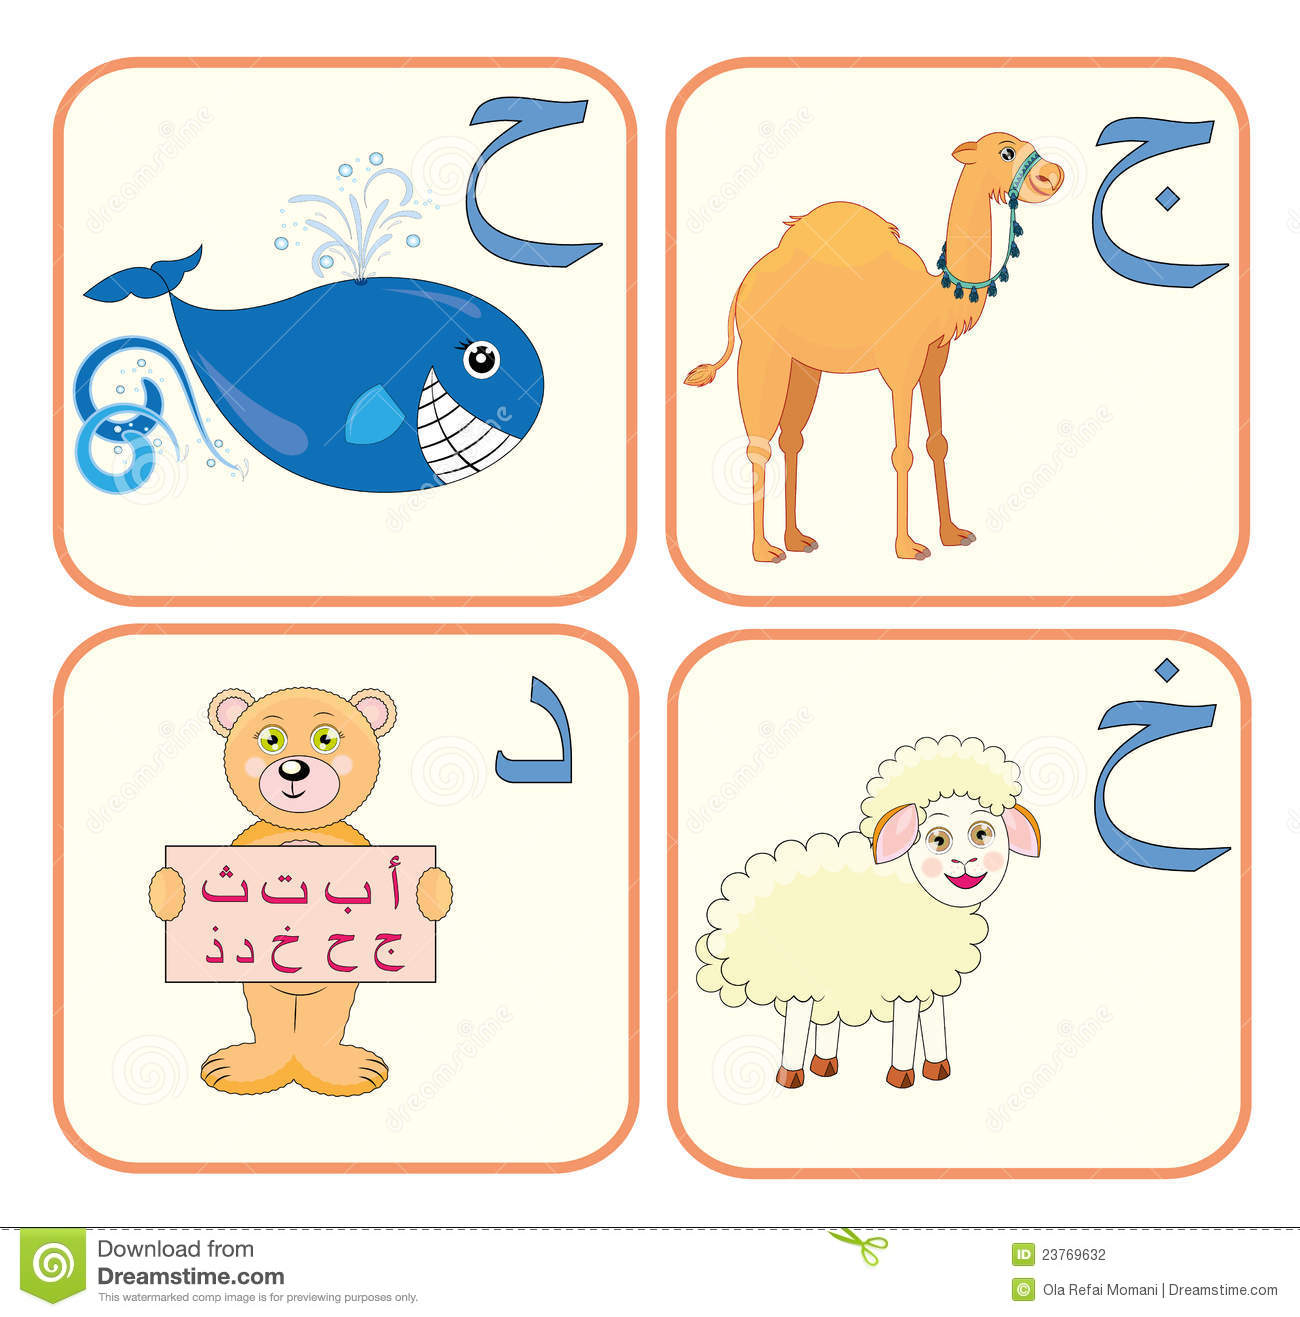 Arabic alphabet for kids with cute animals and fruit for each letter - Alphabet Arabic Cute Kids Smile Animal